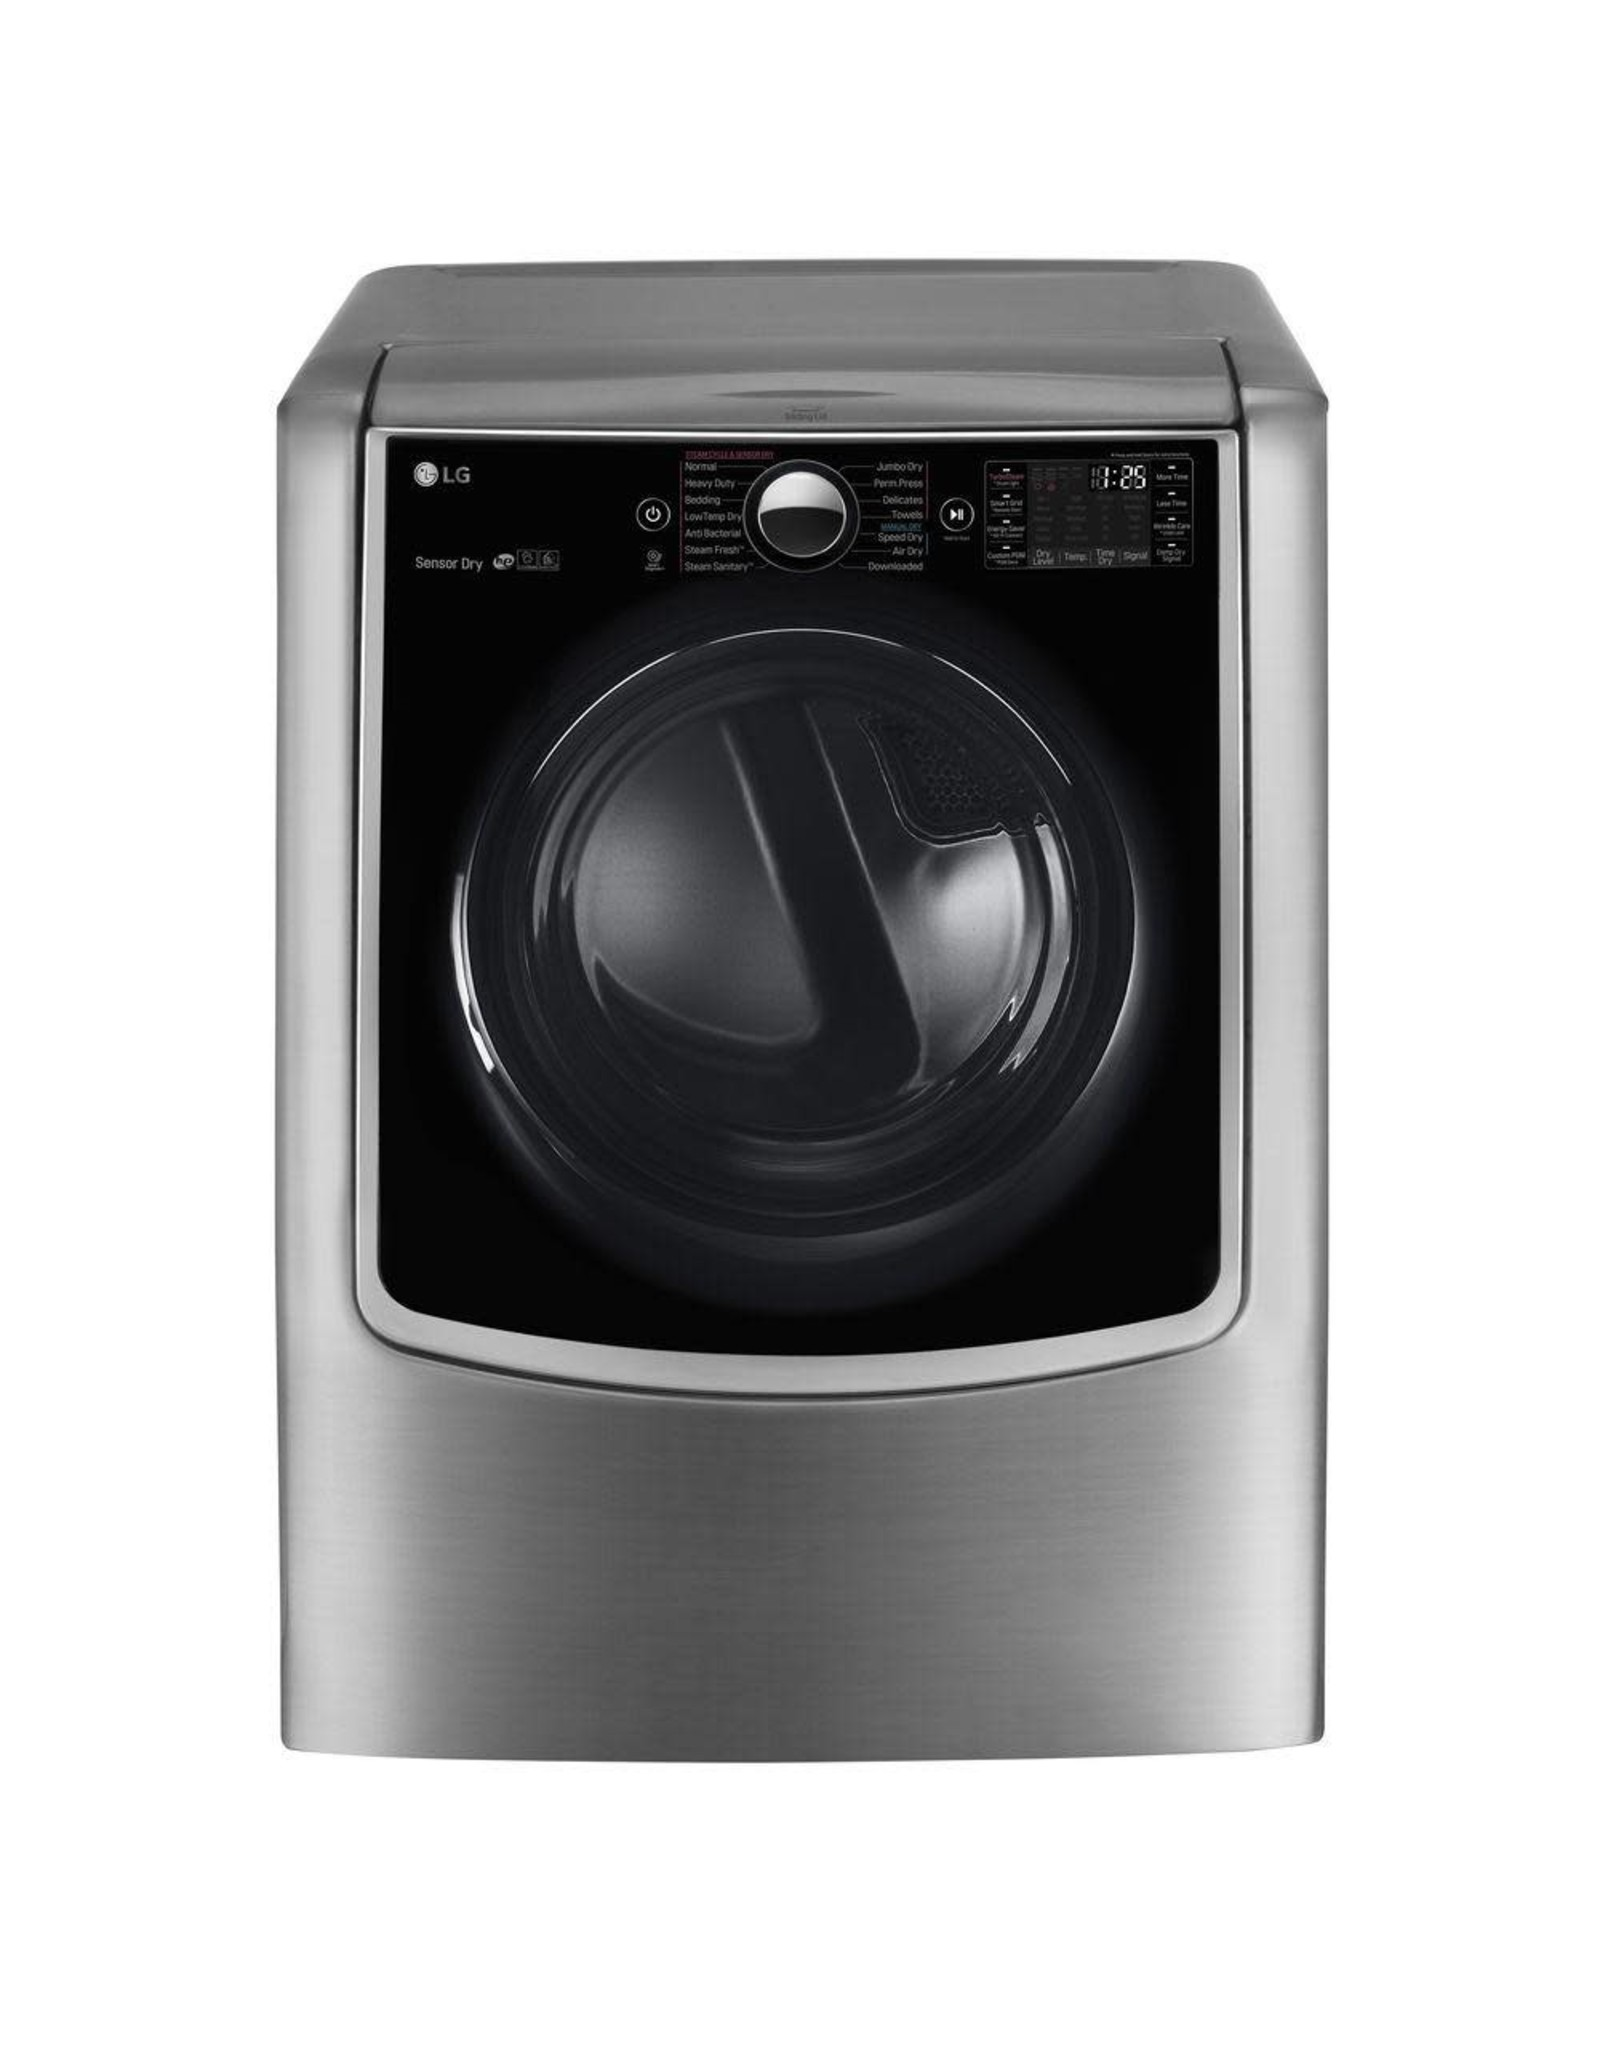 LG Electronics DLEX9000V 9.0 cu. ft. Large Smart Front Load Electric Dryer w/ TurboSteam, Pedestal Compatible & Wi-Fi Enabled in Graphite Steel